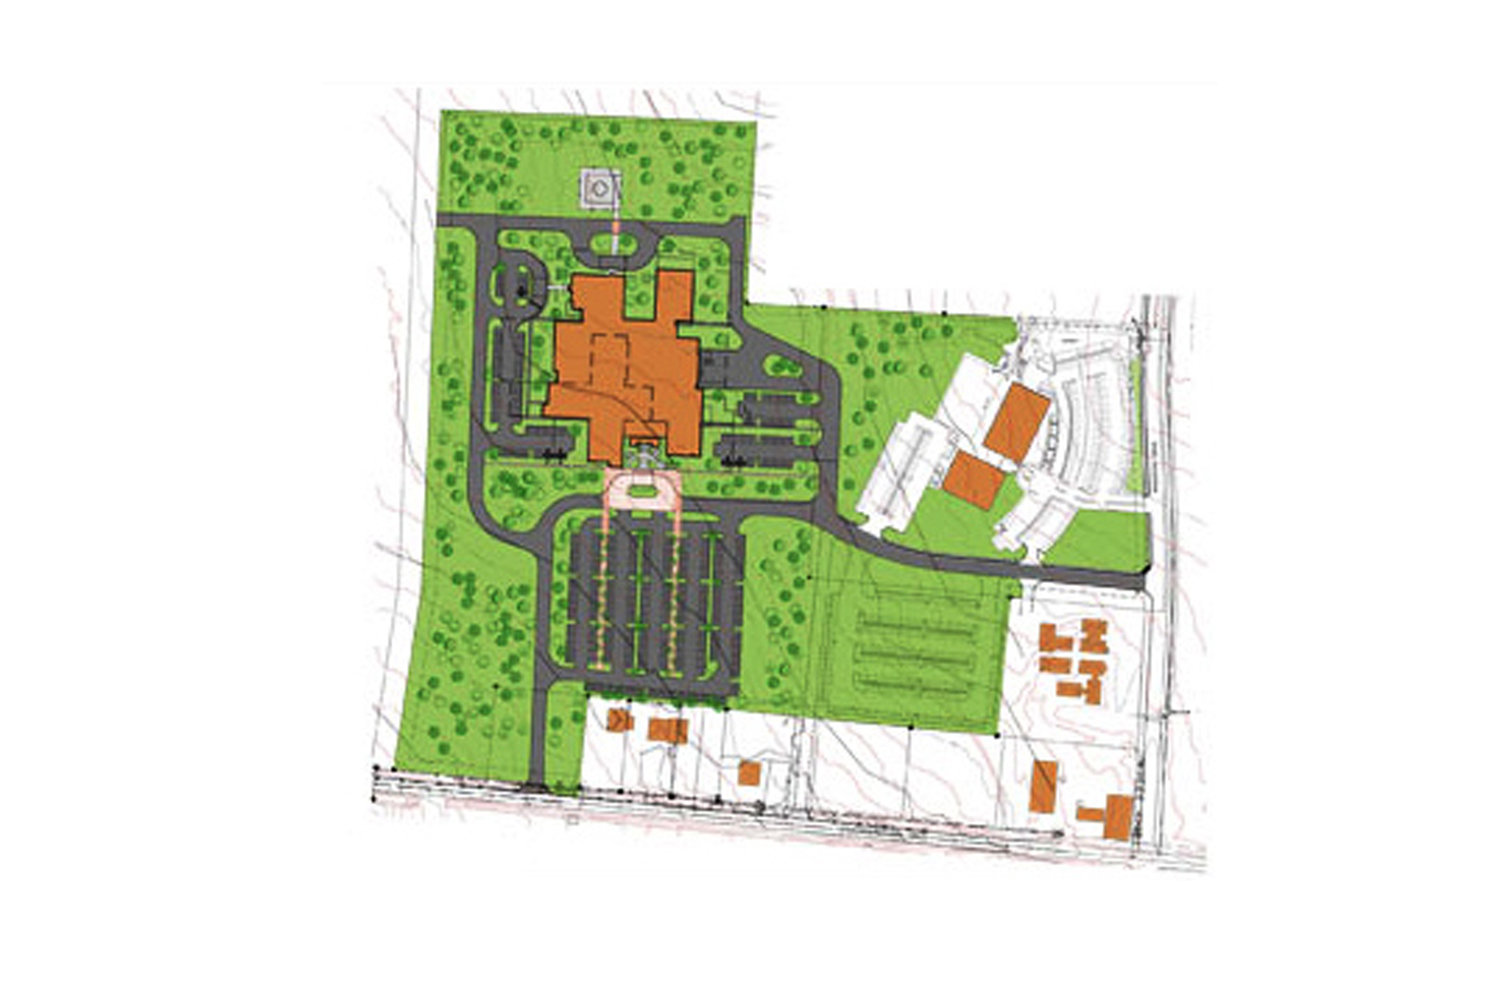 Yavapai Regional Medical Center East Campus Master Plan — Tucson, on new mexico state university campus map, south mountain campus map, brevard campus map, broward campus map, solano campus map, garfield campus map, sonoma campus map, polk campus map, pueblo campus map, taylor campus map, glendale campus map, fresno campus map, santa barbara city college campus map, alameda campus map, madera campus map, nassau campus map, montgomery campus map, eastern washington campus map, franklin campus map, macon campus map,